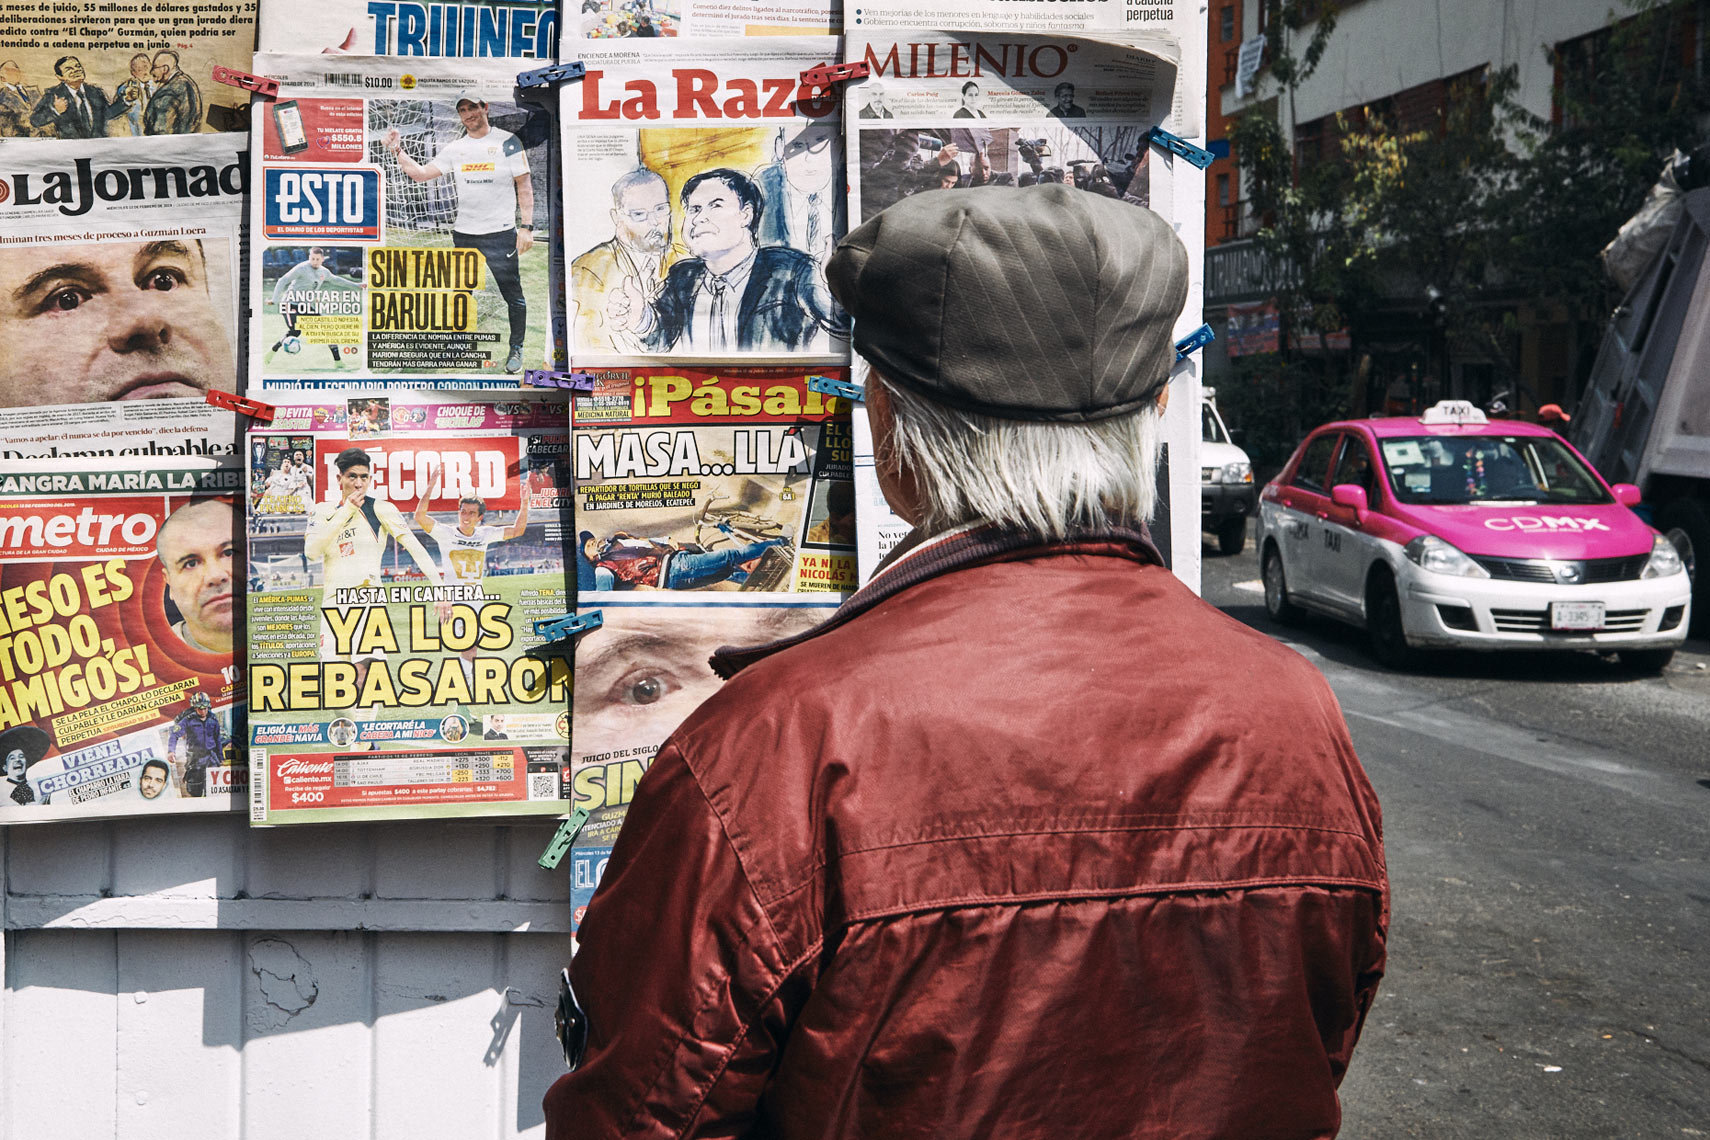 Stylish-man-reads-news-covers-at-Mexico-City-news-stand